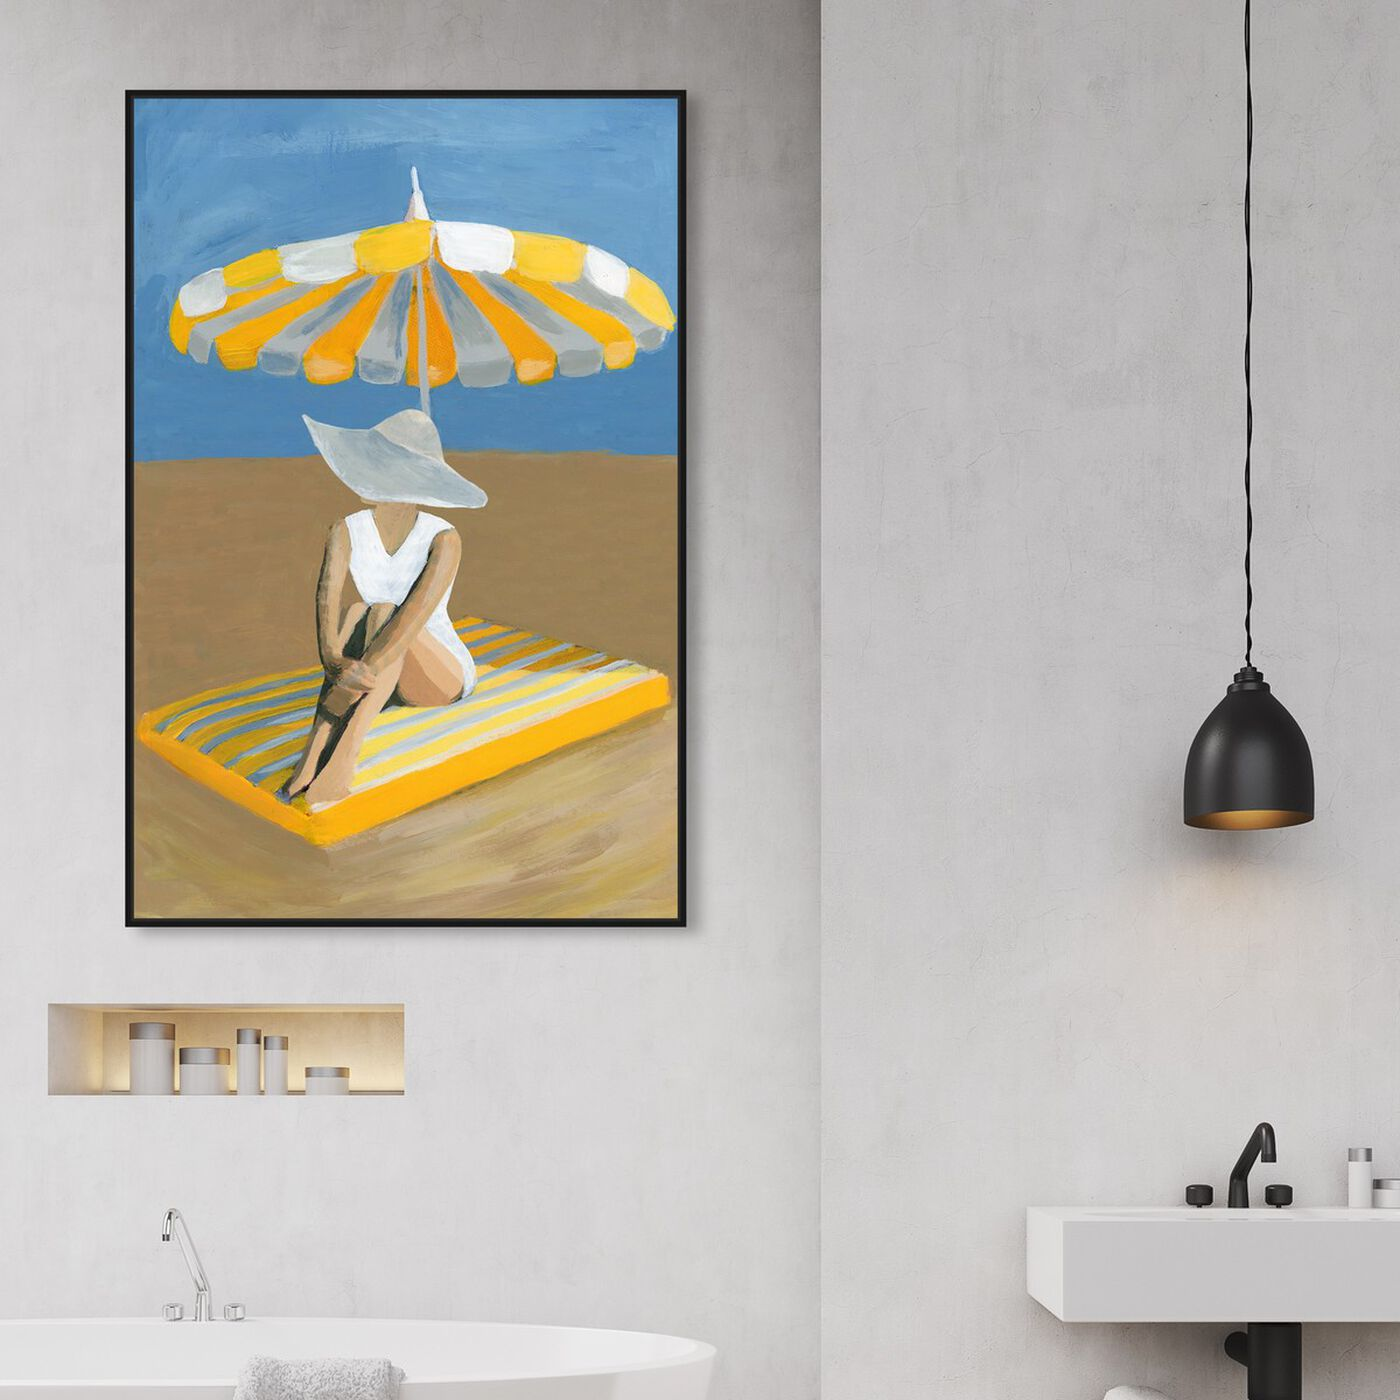 Hanging view of Yellow Umbrella featuring fashion and glam and swimsuit art.